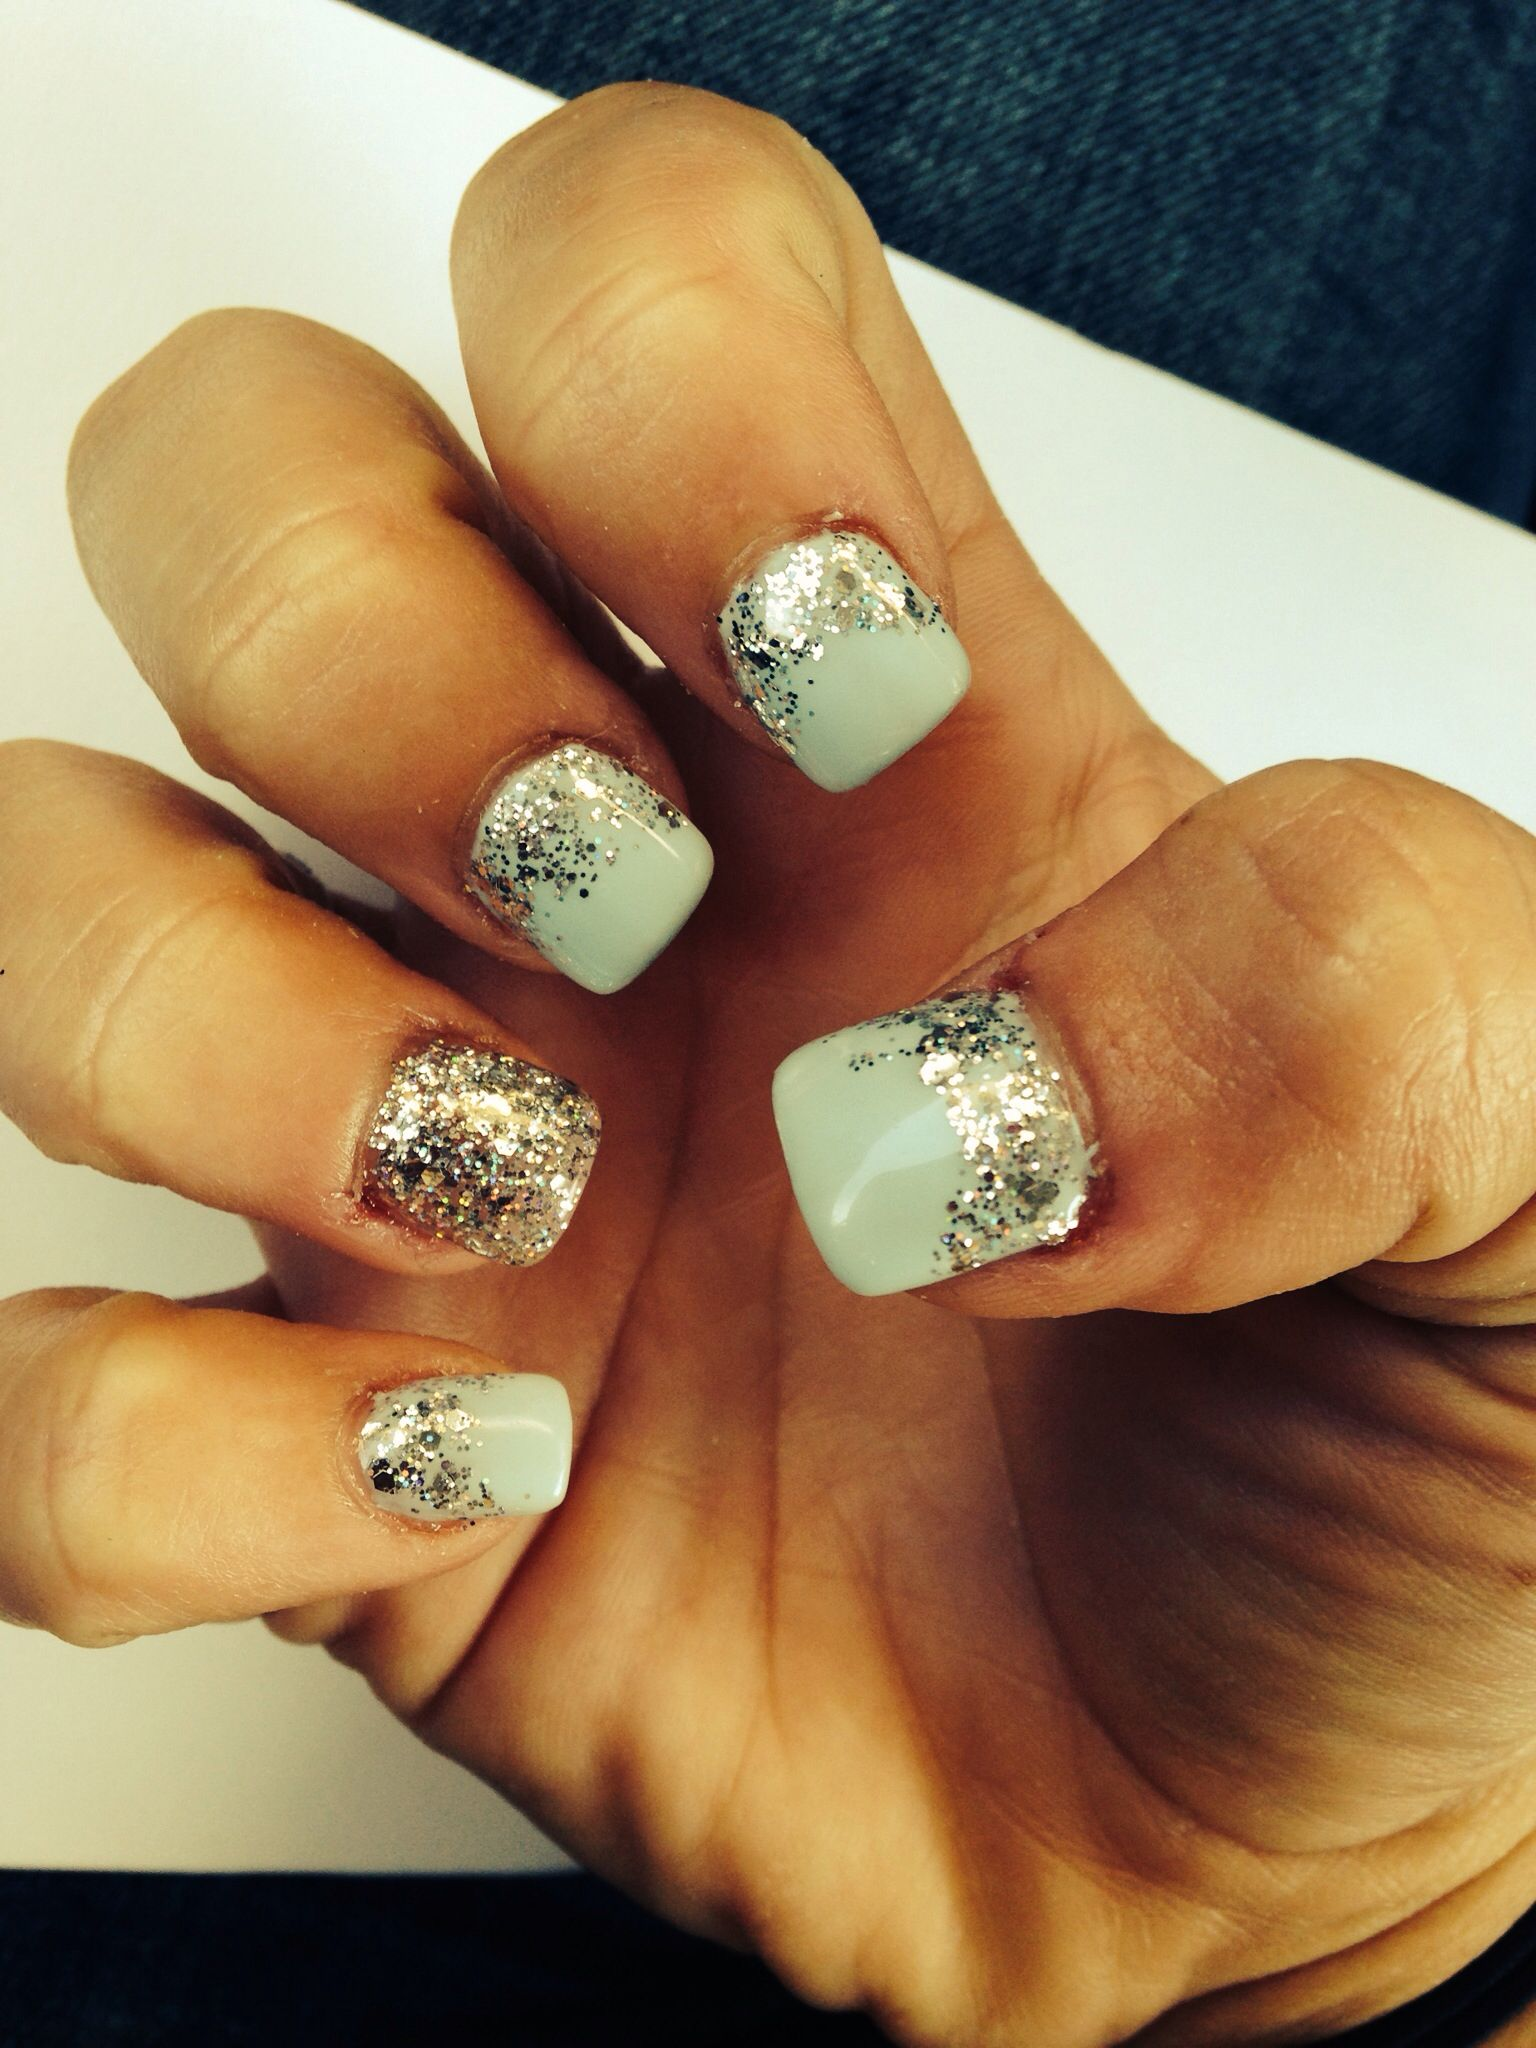 Prom nails! Baby blue with glitter. Love them | Prom nails ...